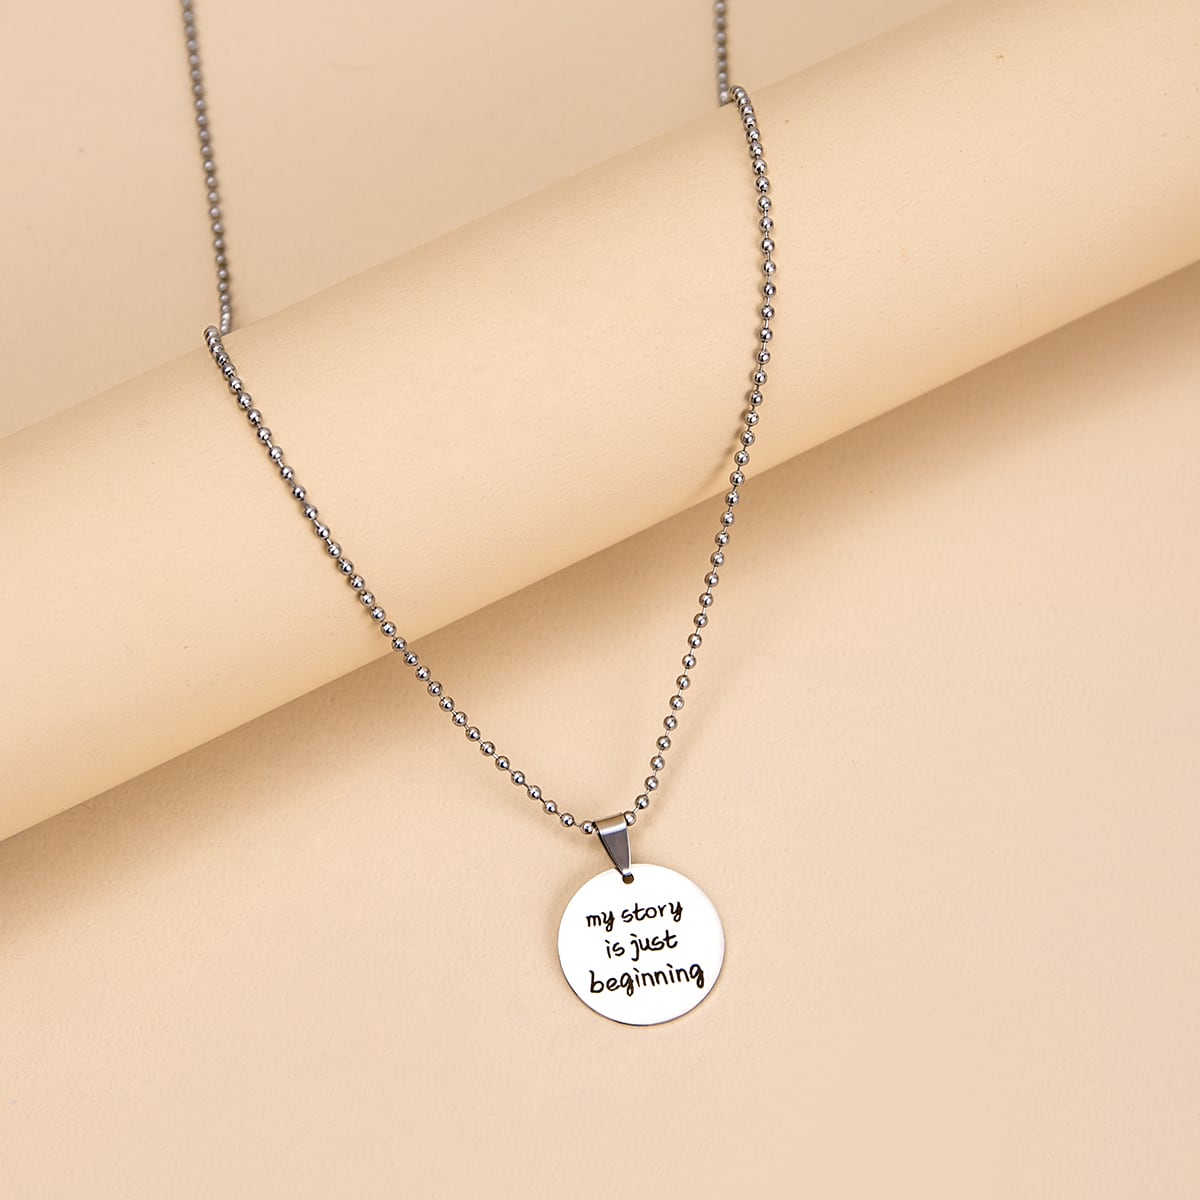 Letter Design Round Charm Necklace, SHEIN  - buy with discount